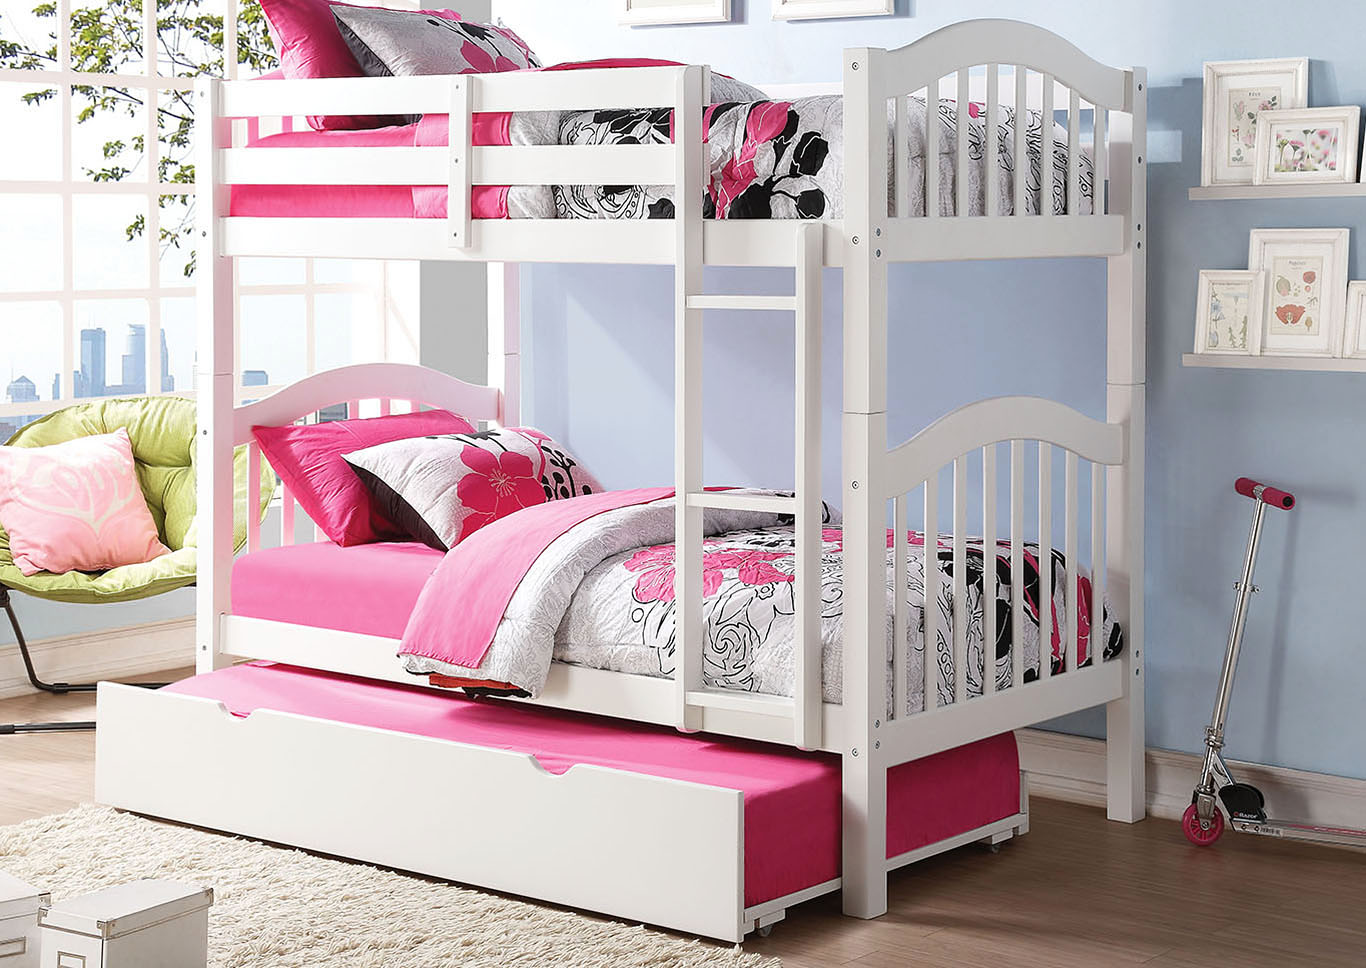 Heartland White Twin/Twin Bunk Bed w/Trundle,Acme